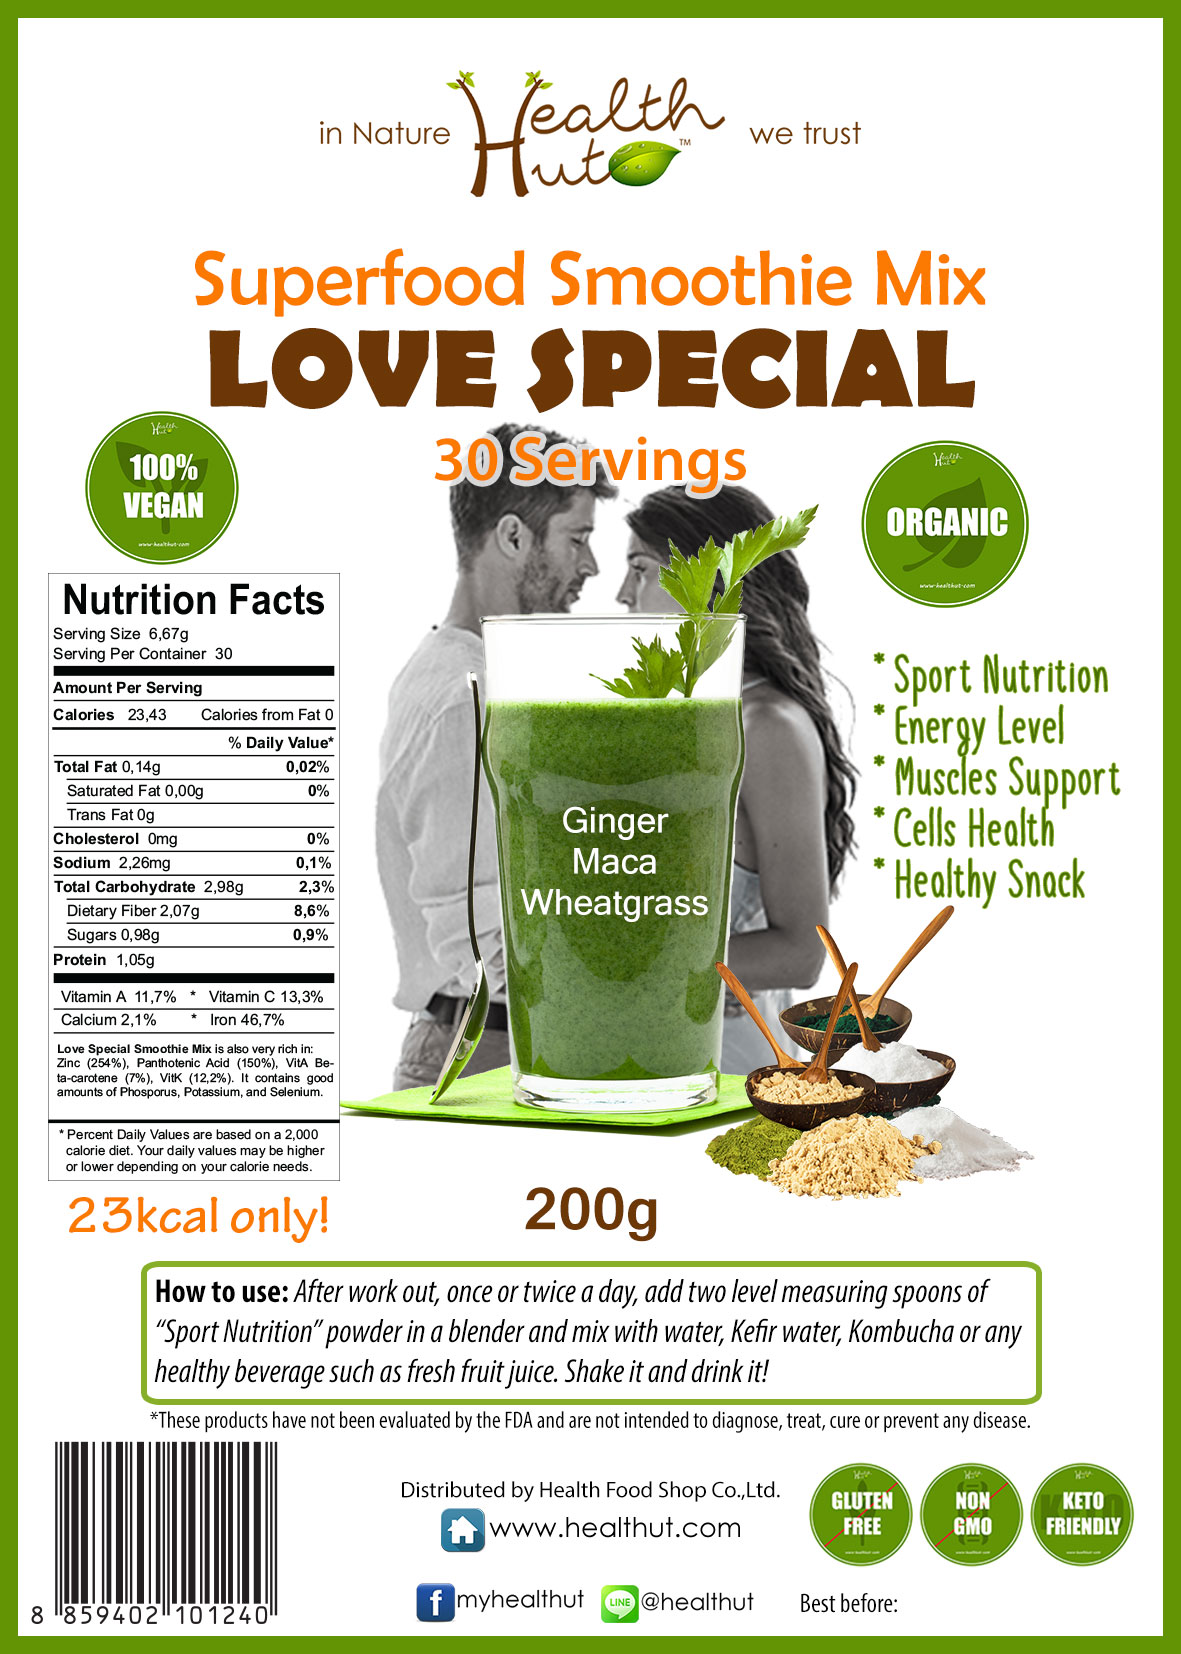 Superfood Mix - Love